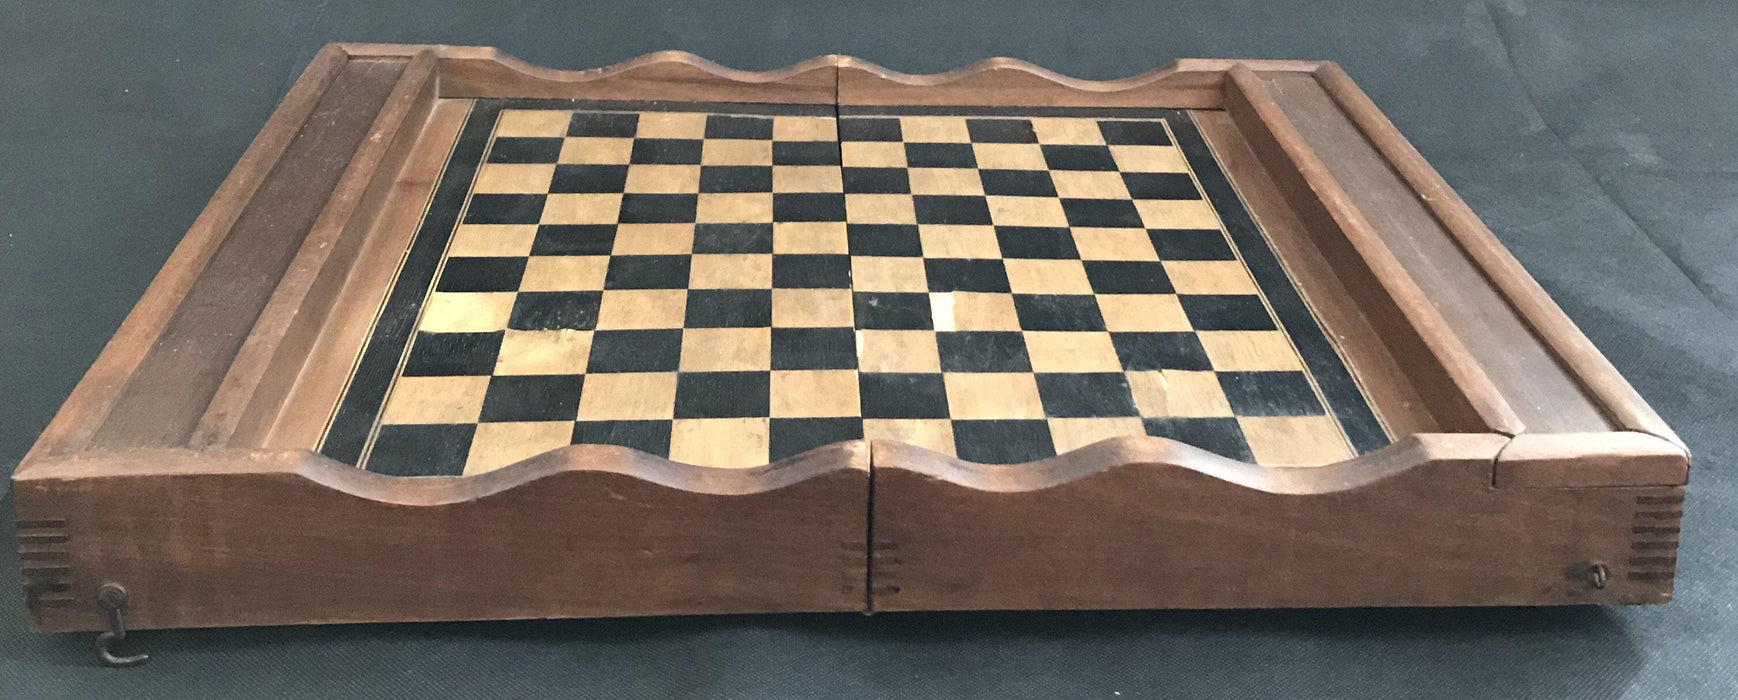 Rare International Checquerboard French Inlaid Chess and Checkerboard/Chequerboard, Backgammon for sale